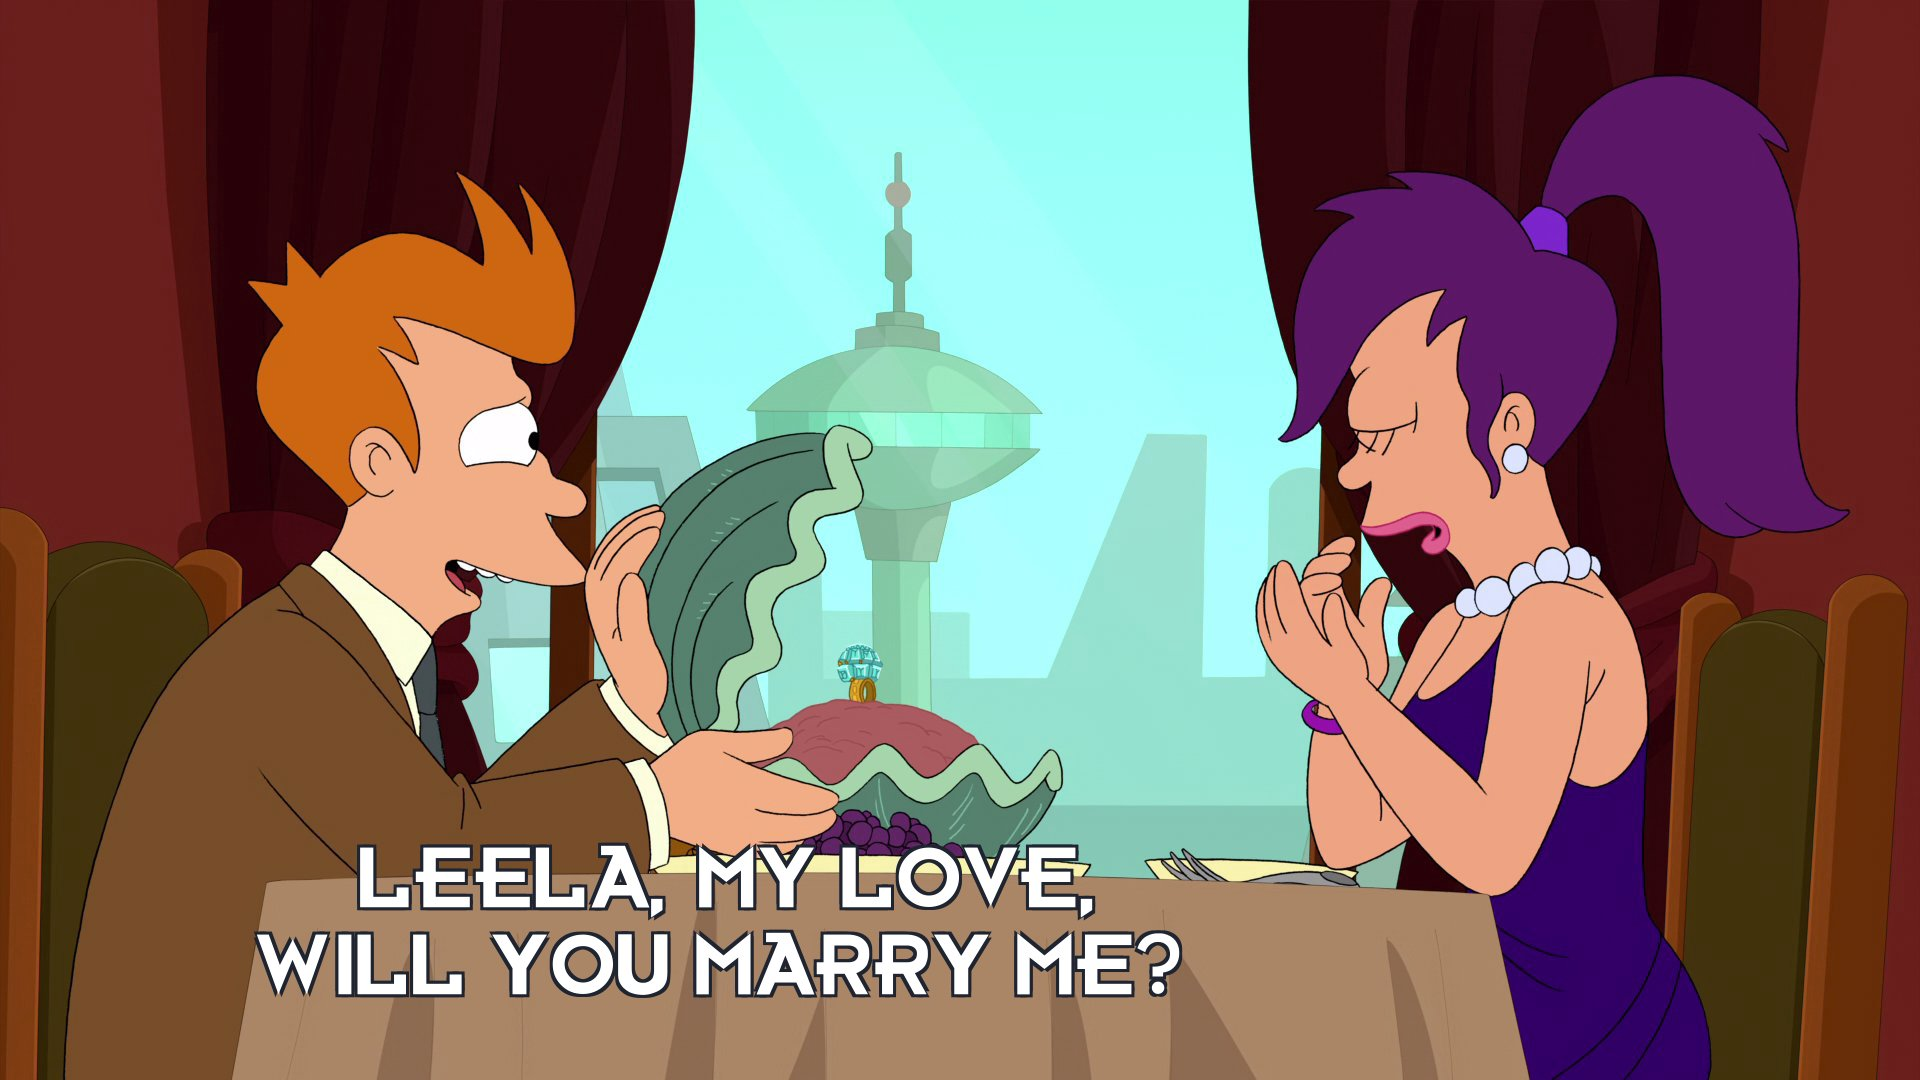 Philip J Fry: Leela, my love, will you marry me?